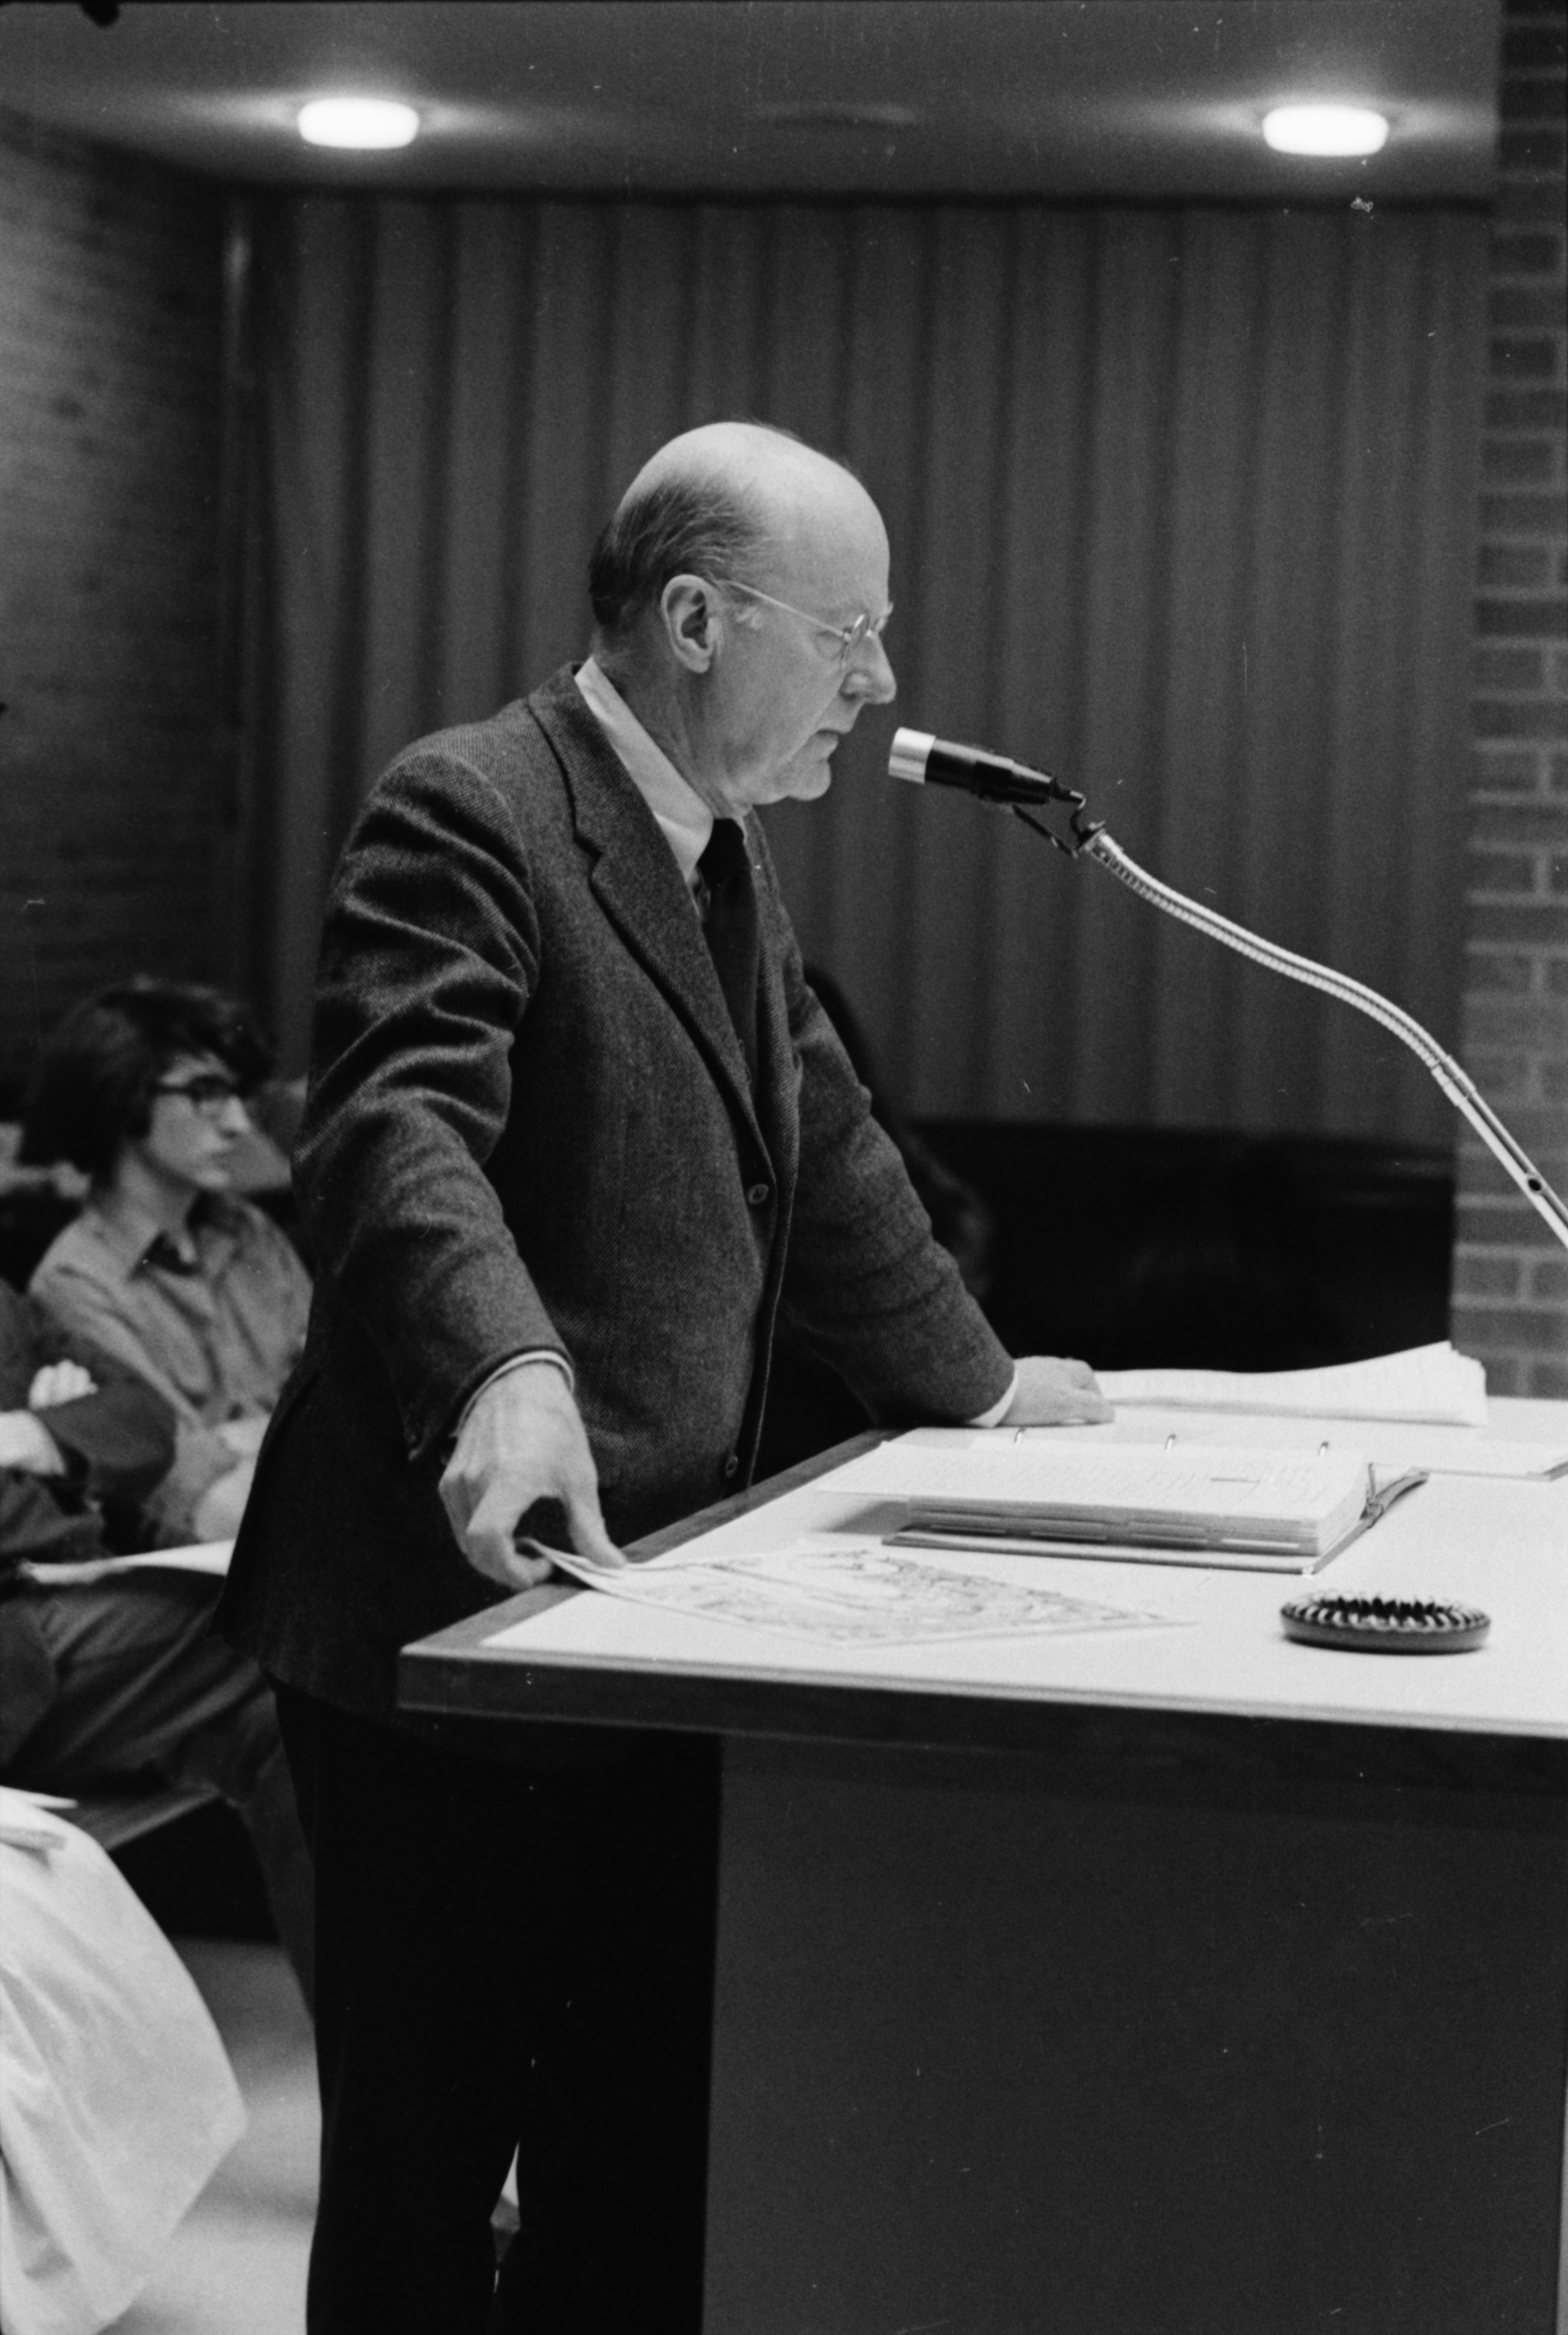 Sesquicentennial Chairman Douglas Crary, at City Council meeting where Sesquicentennial is Proclaimed, January 7, 1974 image